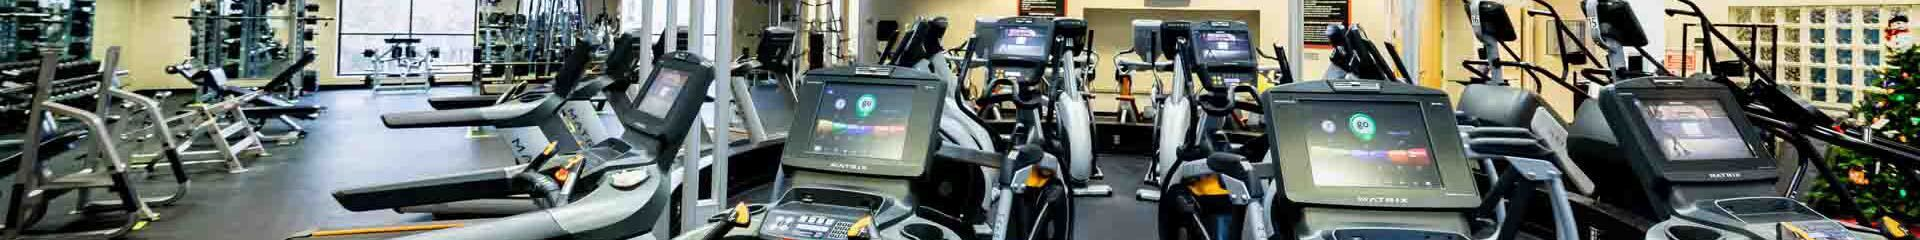 Panoramic view of treadmills in the gym